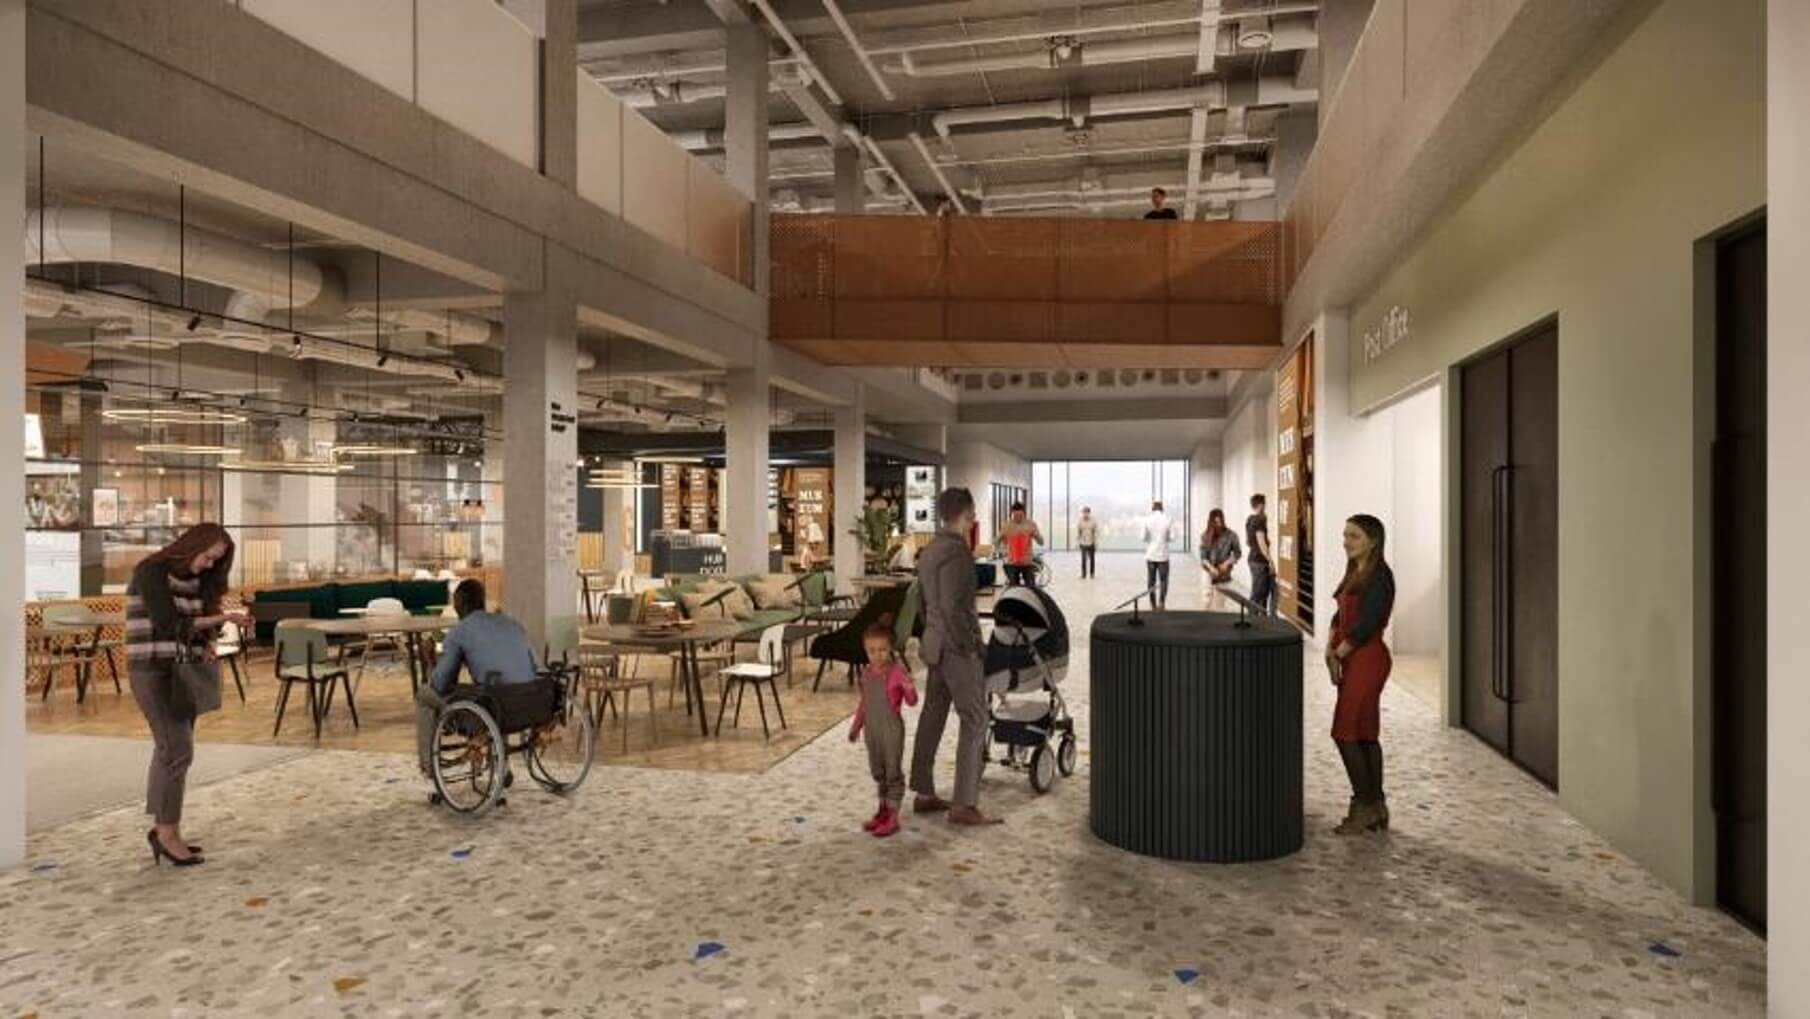 Council reveals new images of its vision for the Stockroom learning and discovery space